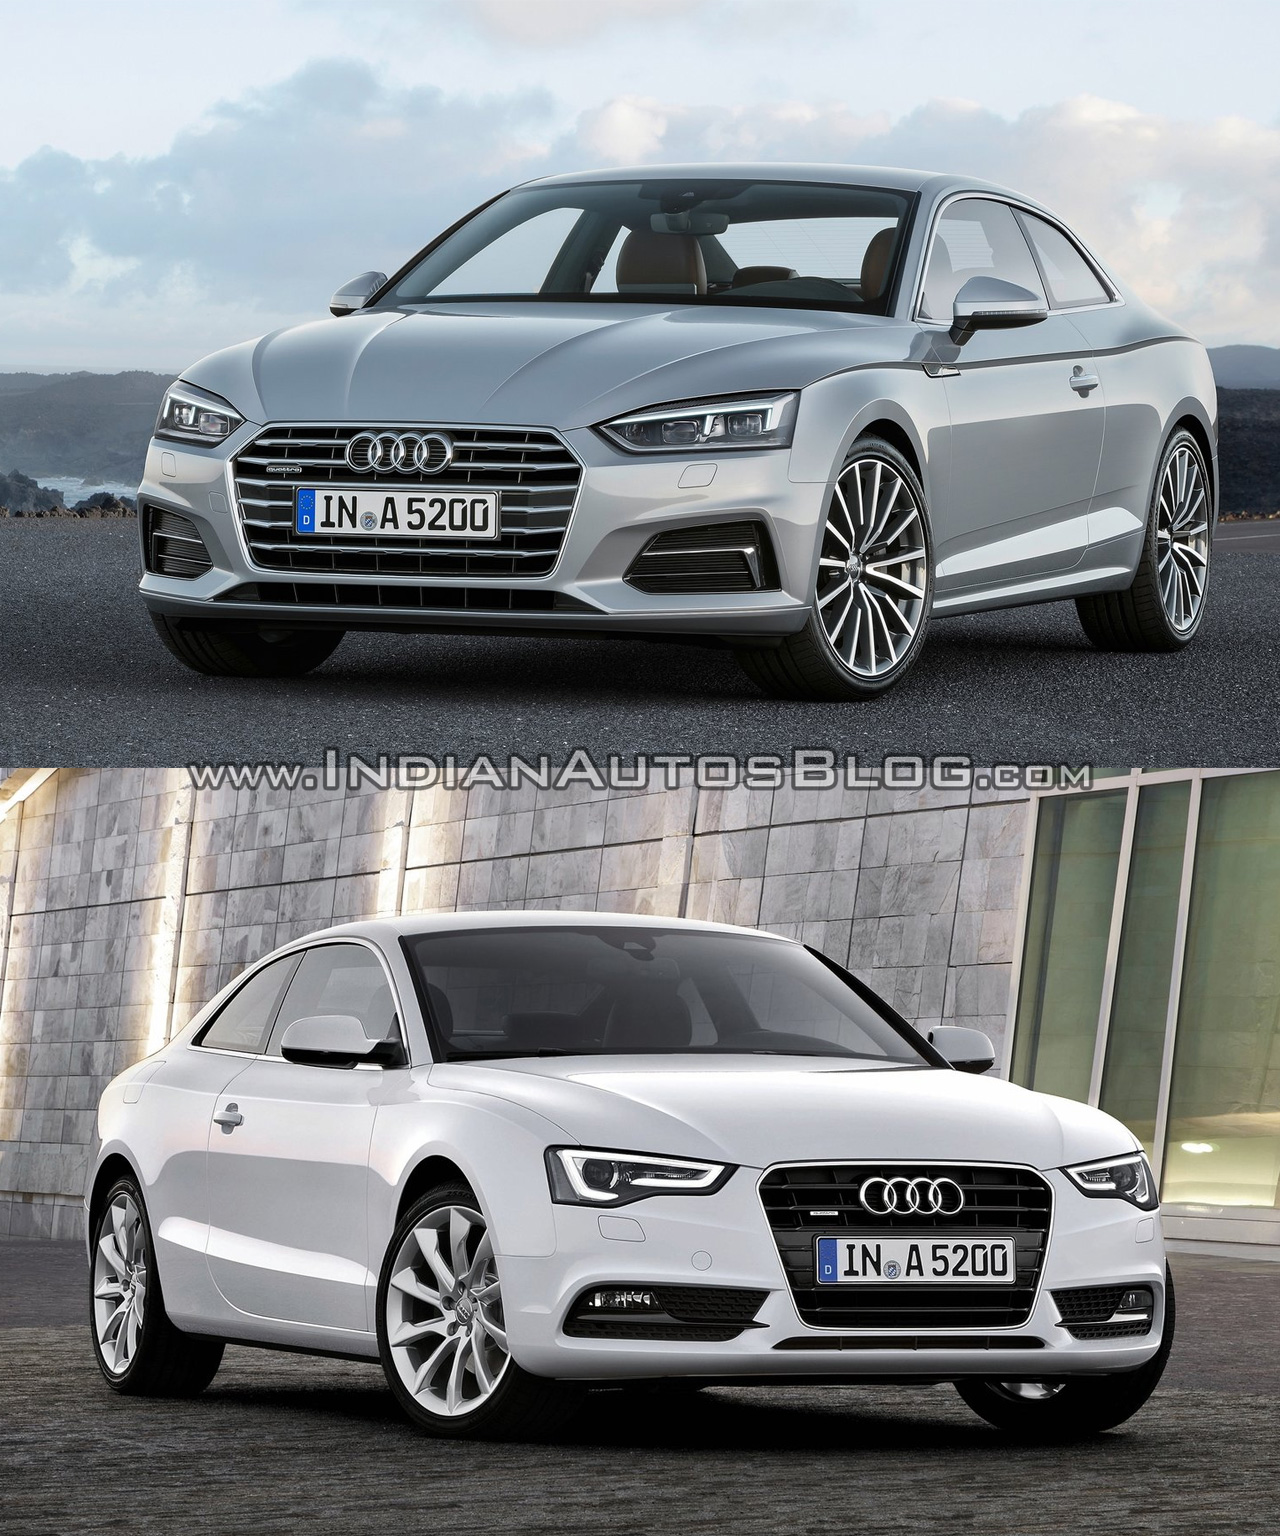 Audi 5 Price: 2016 Audi A5 Coupe Vs. 2012 Audi A5 Coupe